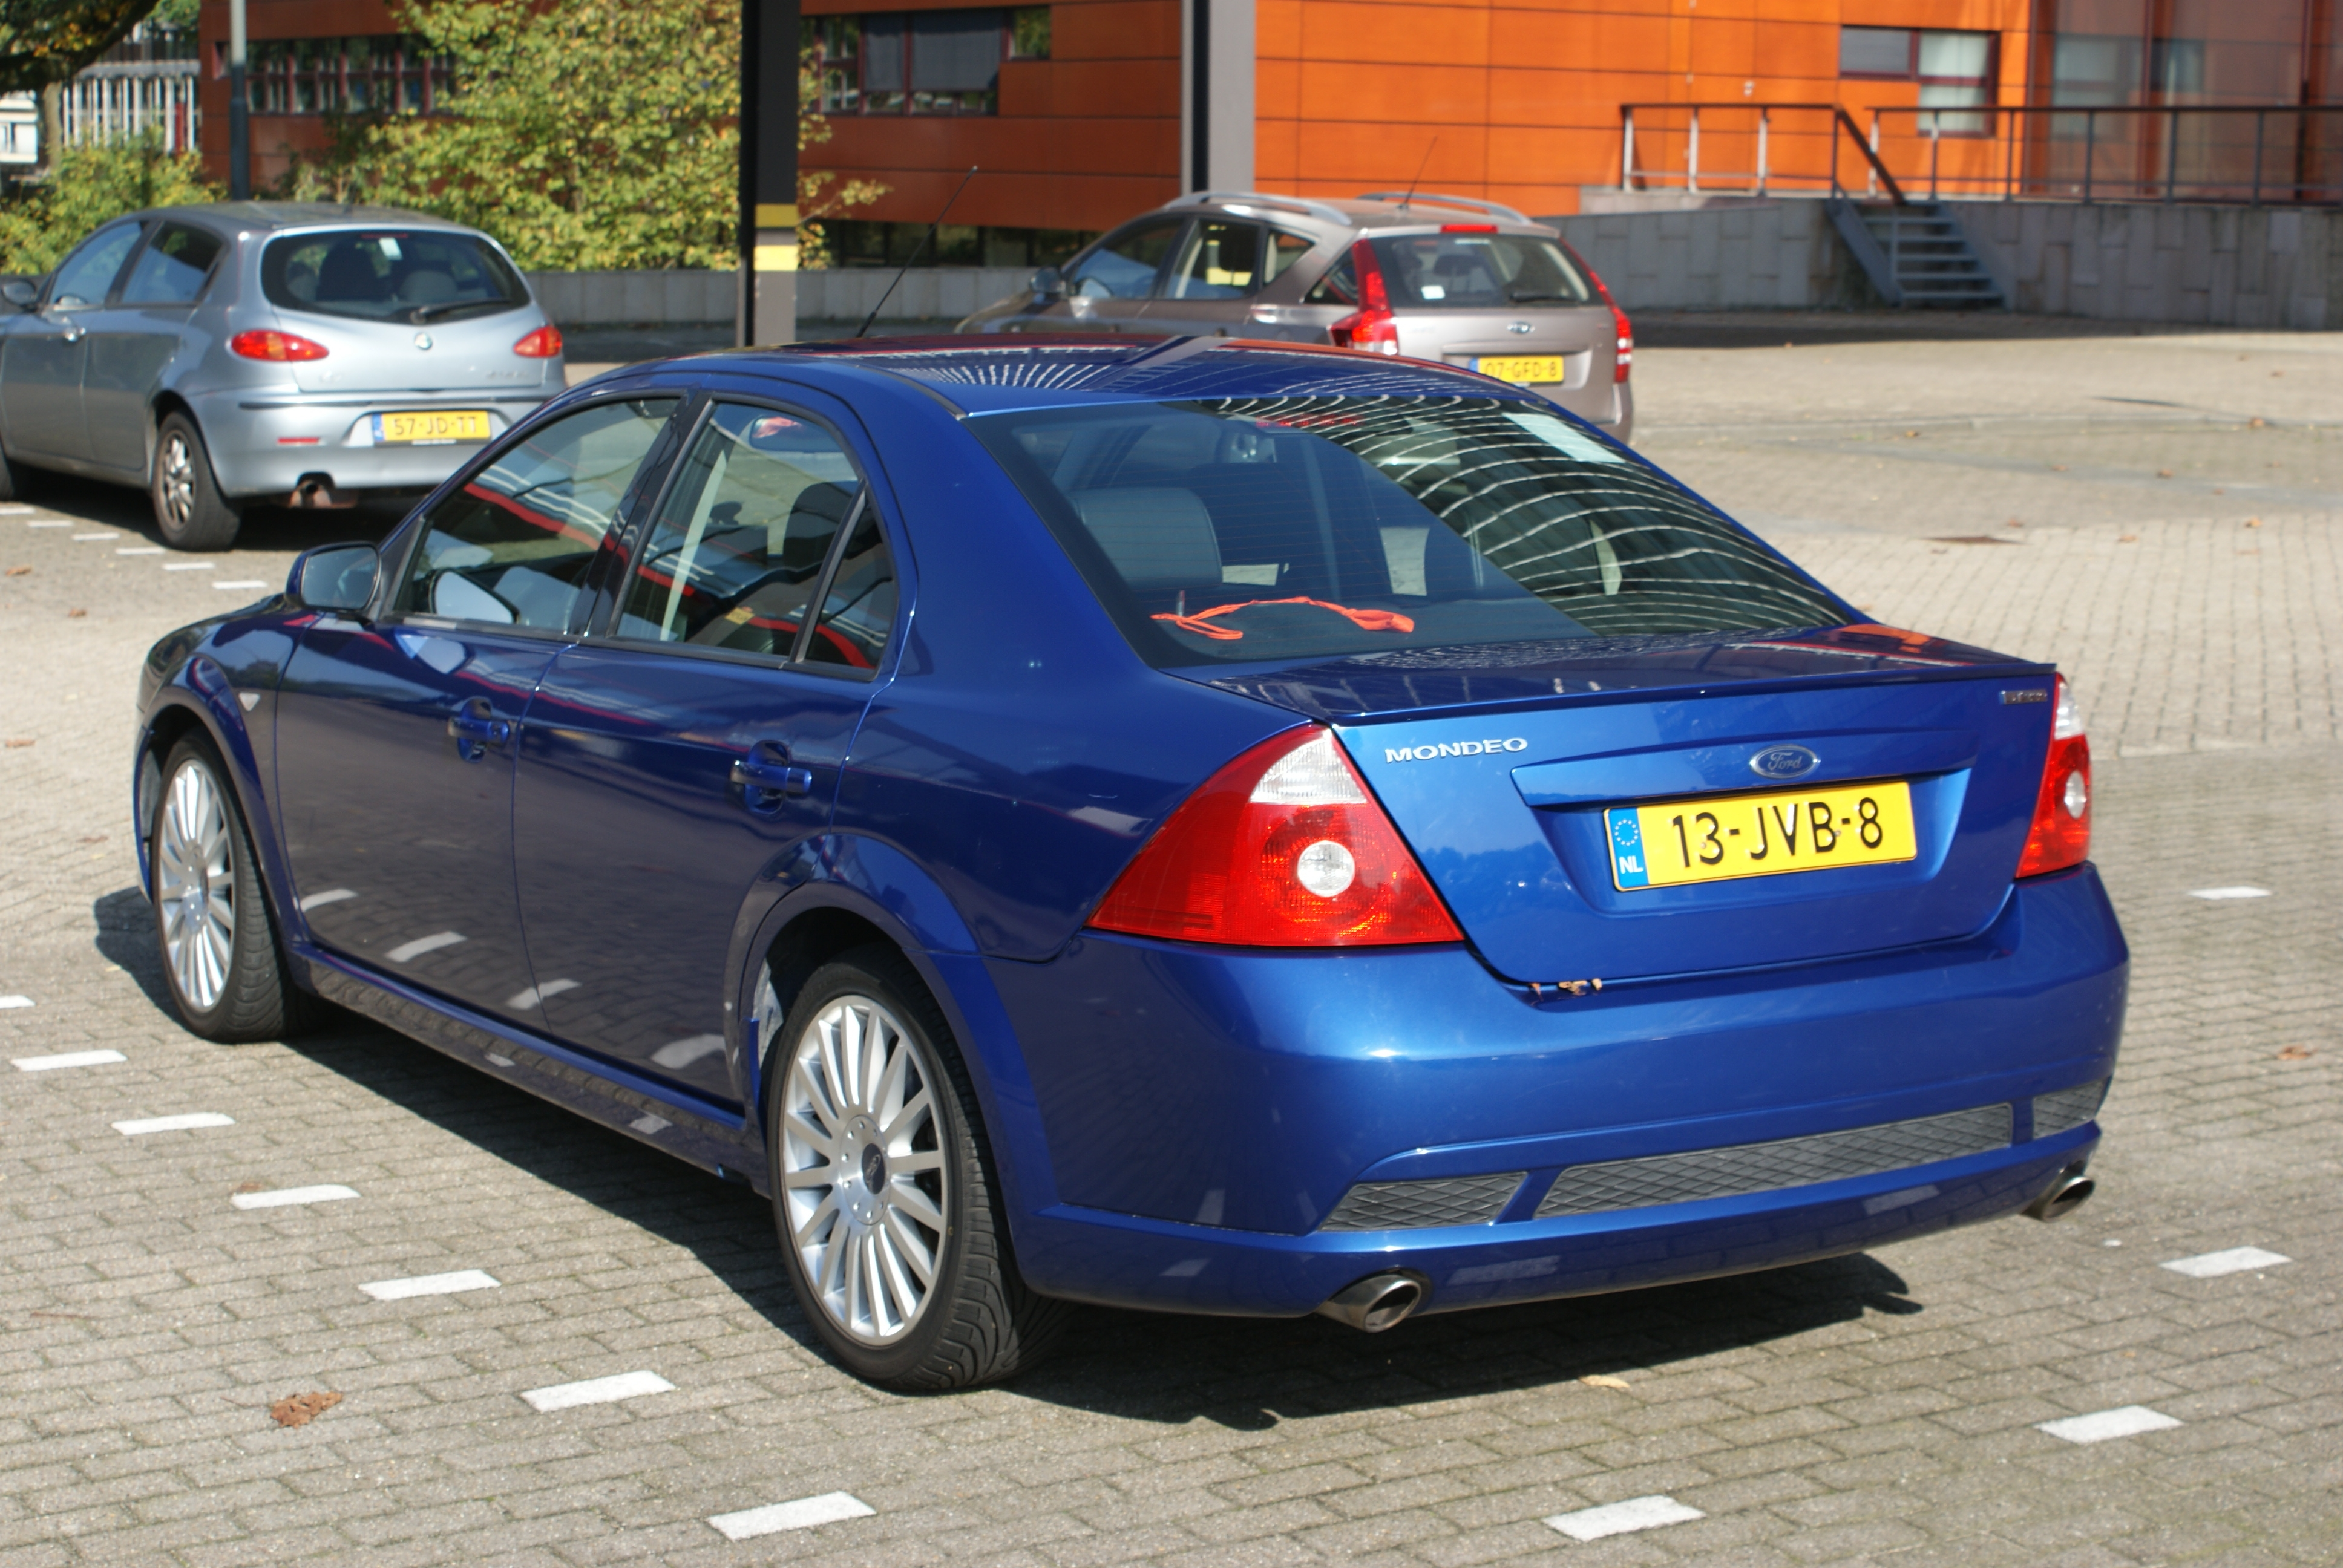 Zralster 2005 Ford Mondeo Specs, Photos, Modification Info